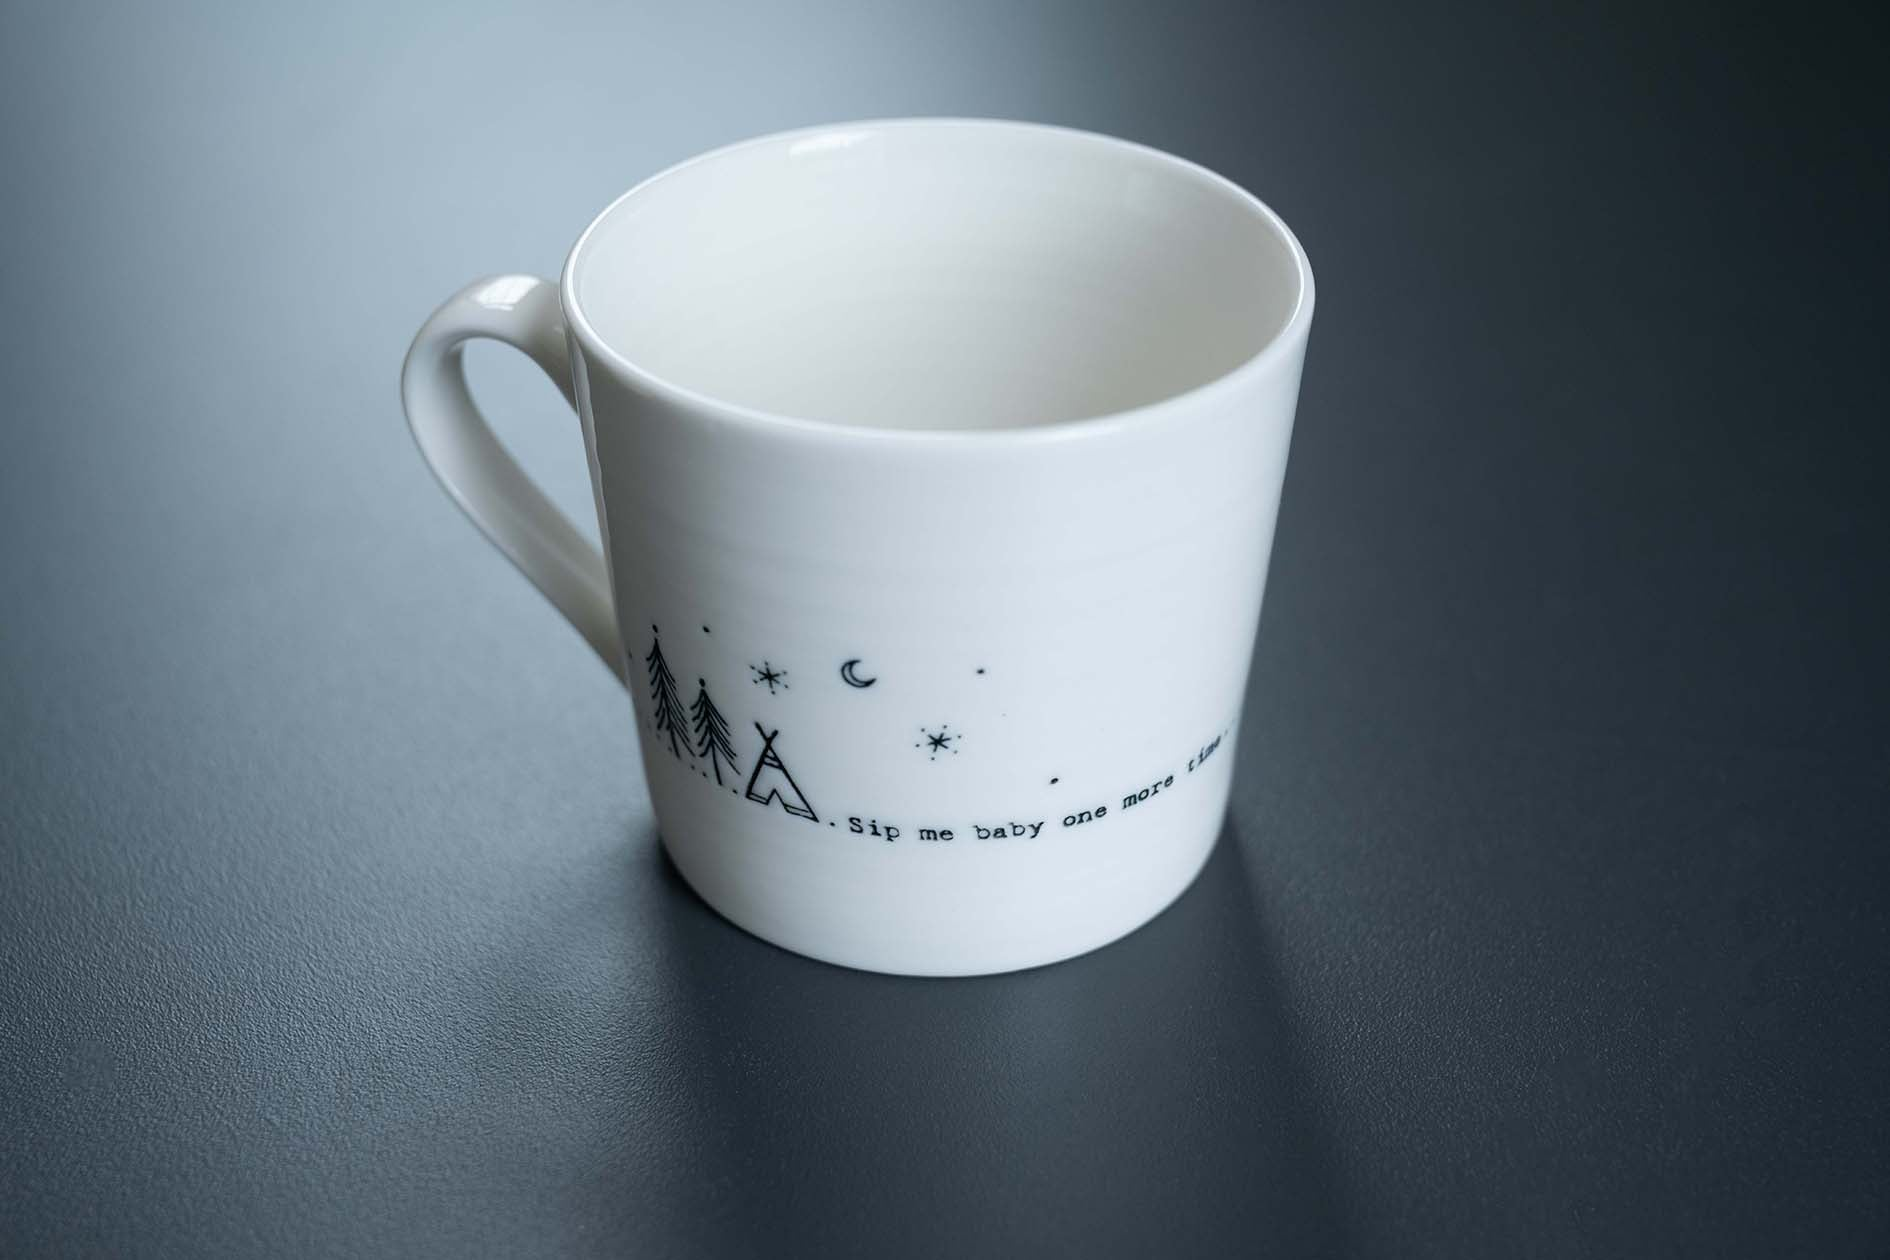 East of India Wobbly Mug - Sip me baby